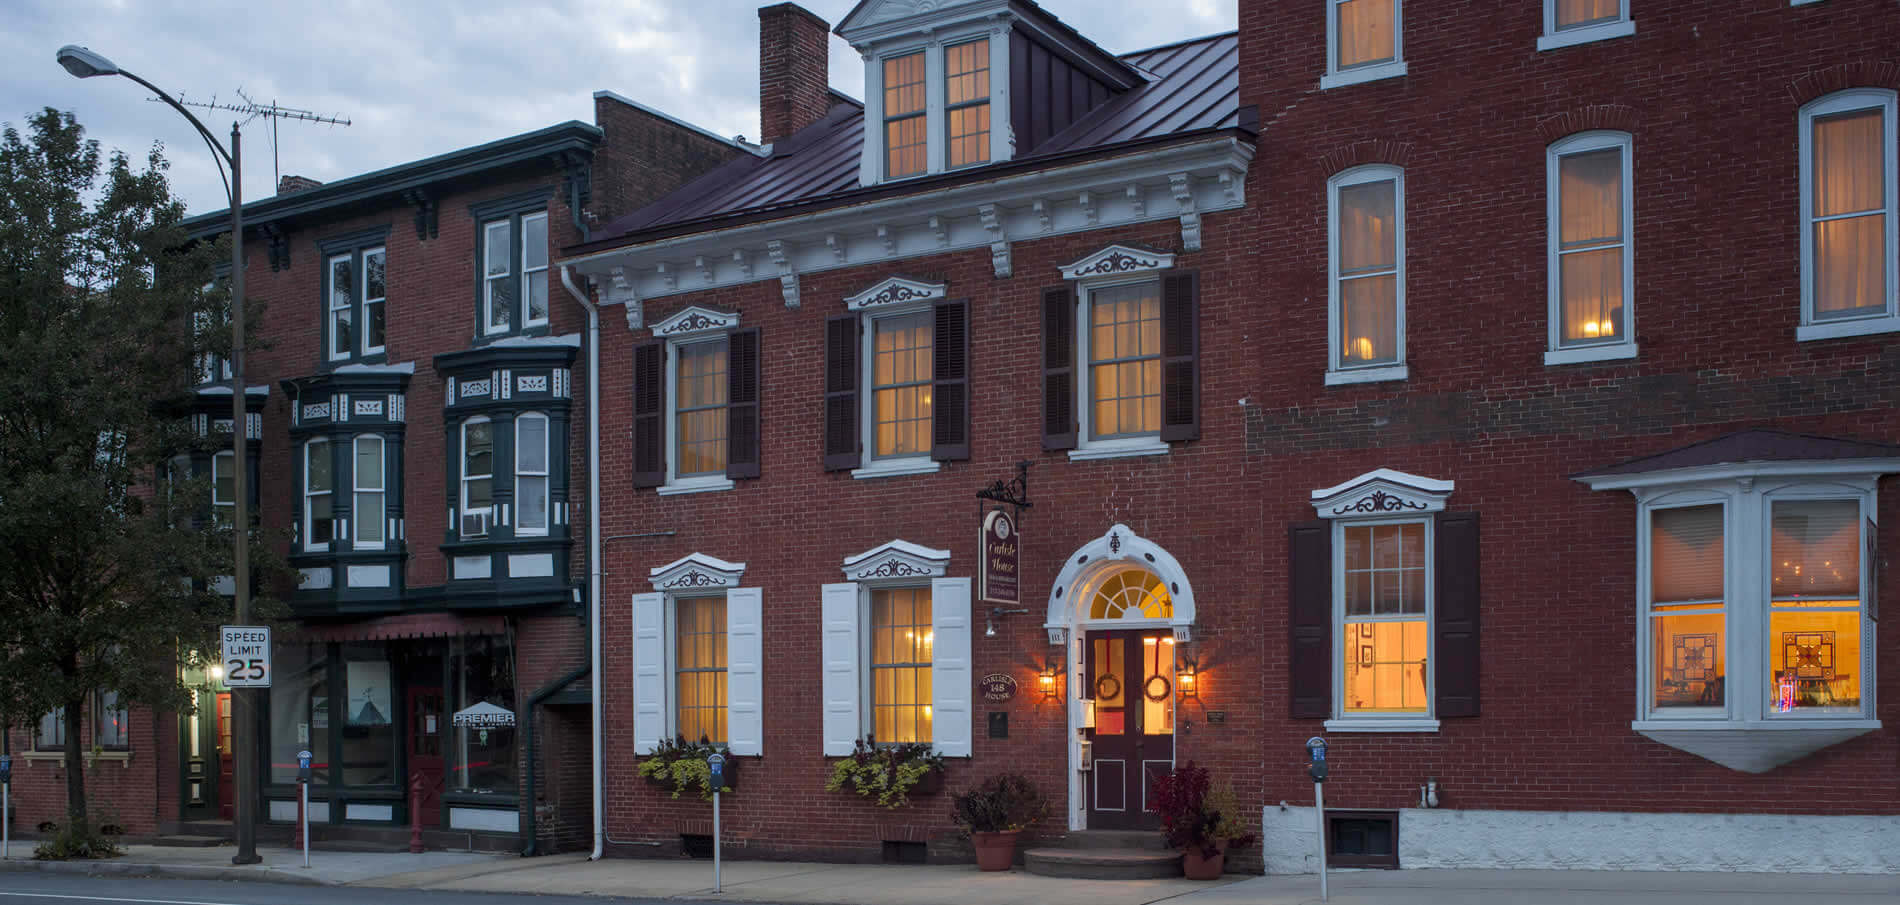 front brick facade of the inn in the early evening with lighted windows